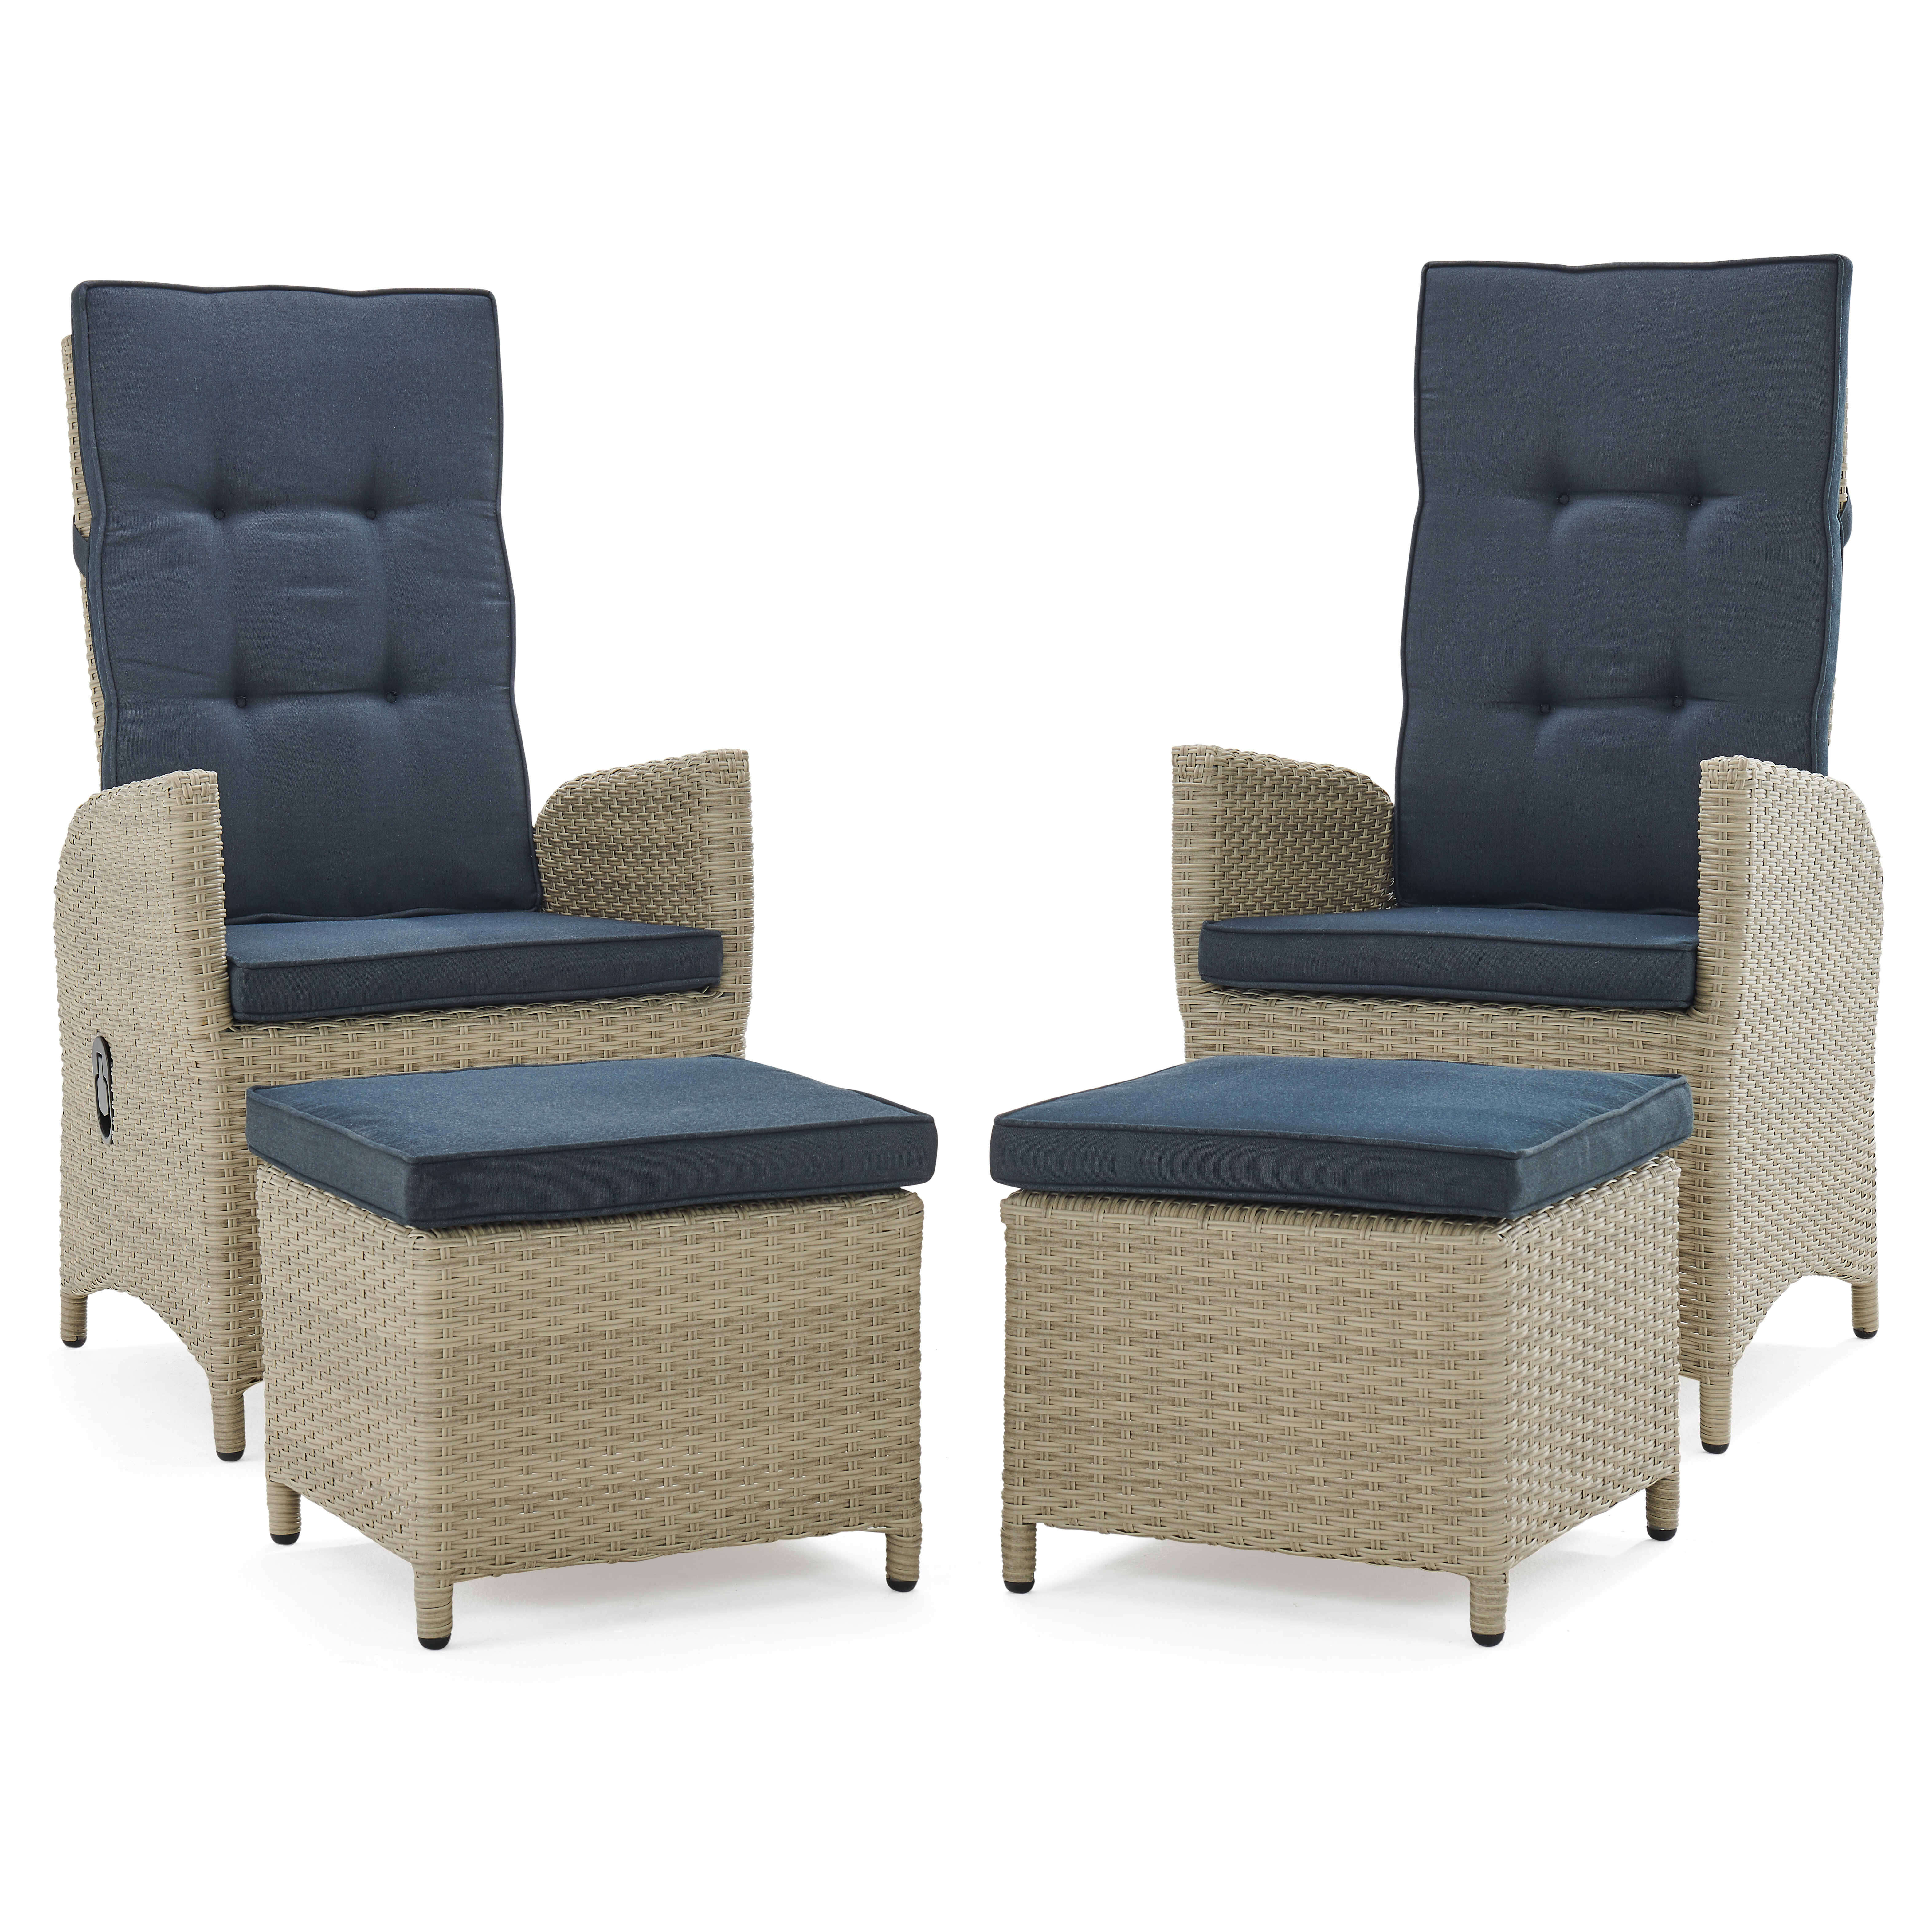 Picture of: Highland Dunes Pangburn Haven All Weather Outdoor Recliner Patio Chair With Cushions And Ottoman Reviews Wayfair